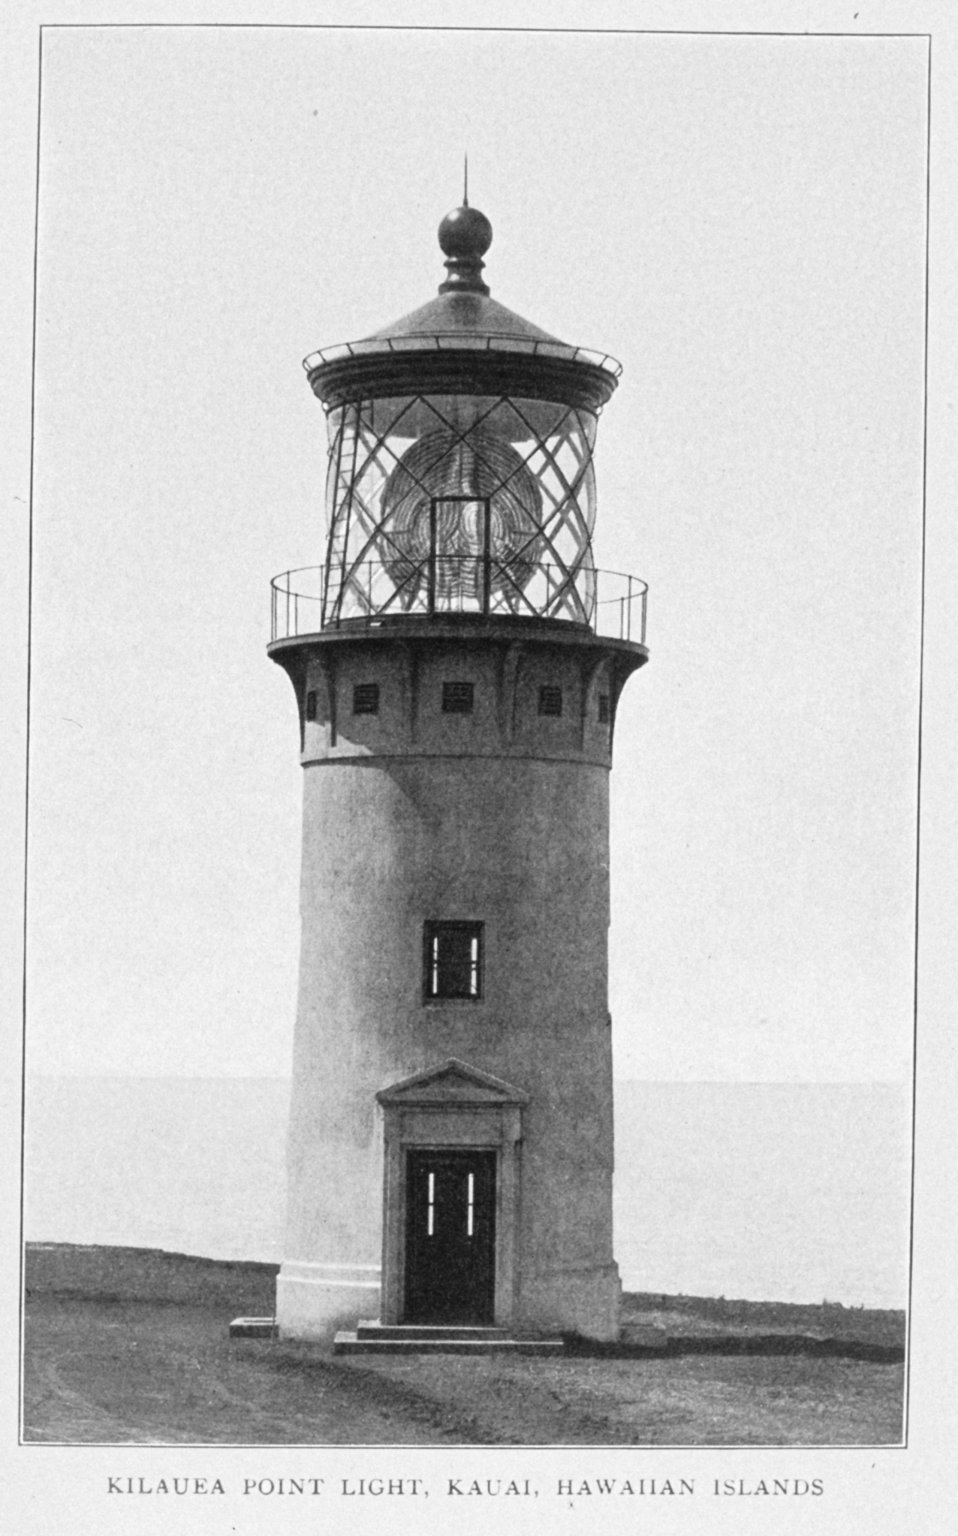 Kilauea Point Light, Kauai, Hawaiian Islands. In: 'Lighthouses and Lightships of the United States' by George R. Putnam, p. 170,  1917.  Houghton Mifflin and Company, Boston.Library Call No. 527.7 P98.